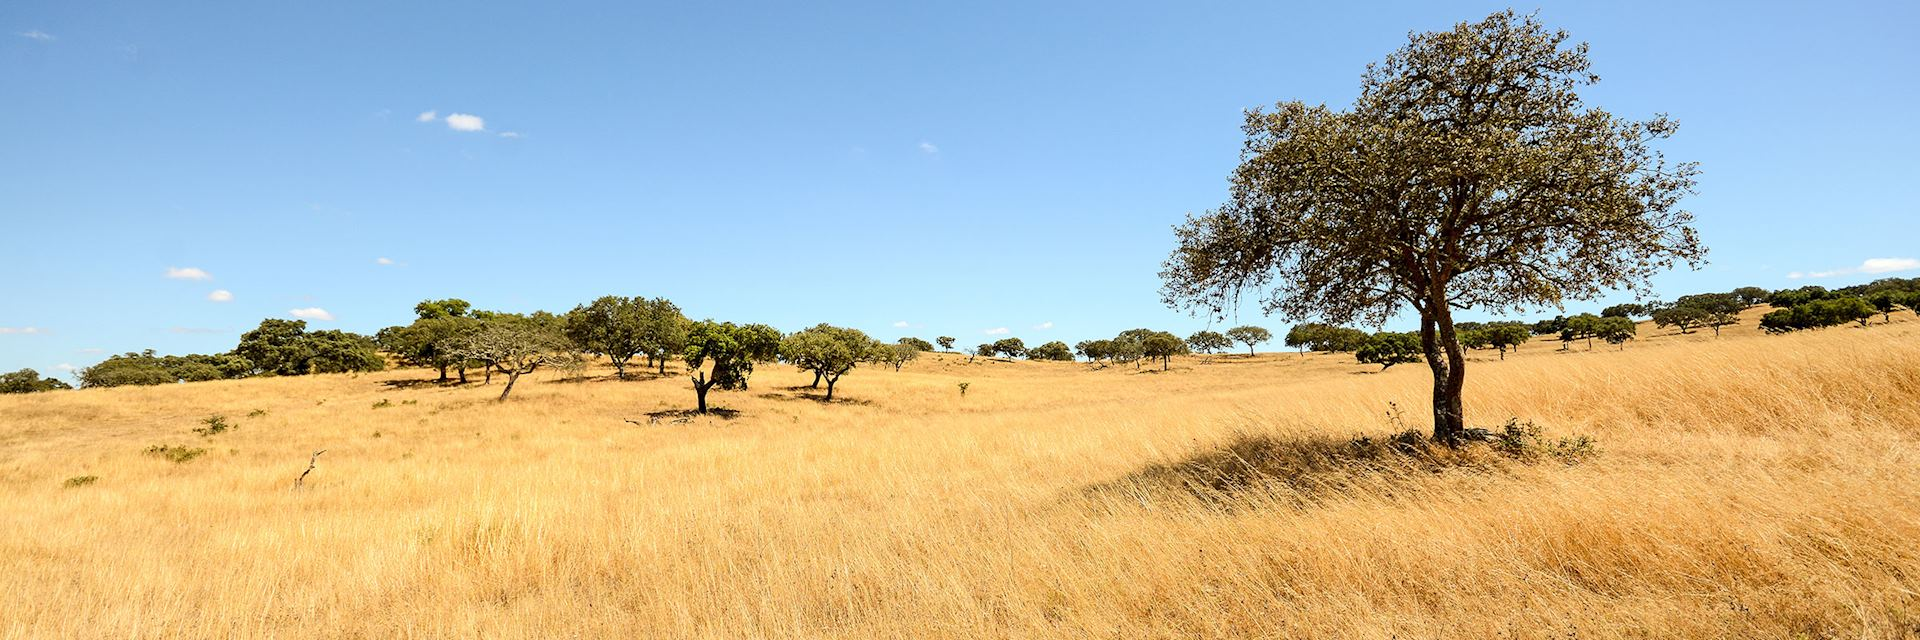 Alentejo landscape with cork oak trees and yellow fields in late summer near Beja, Portugal